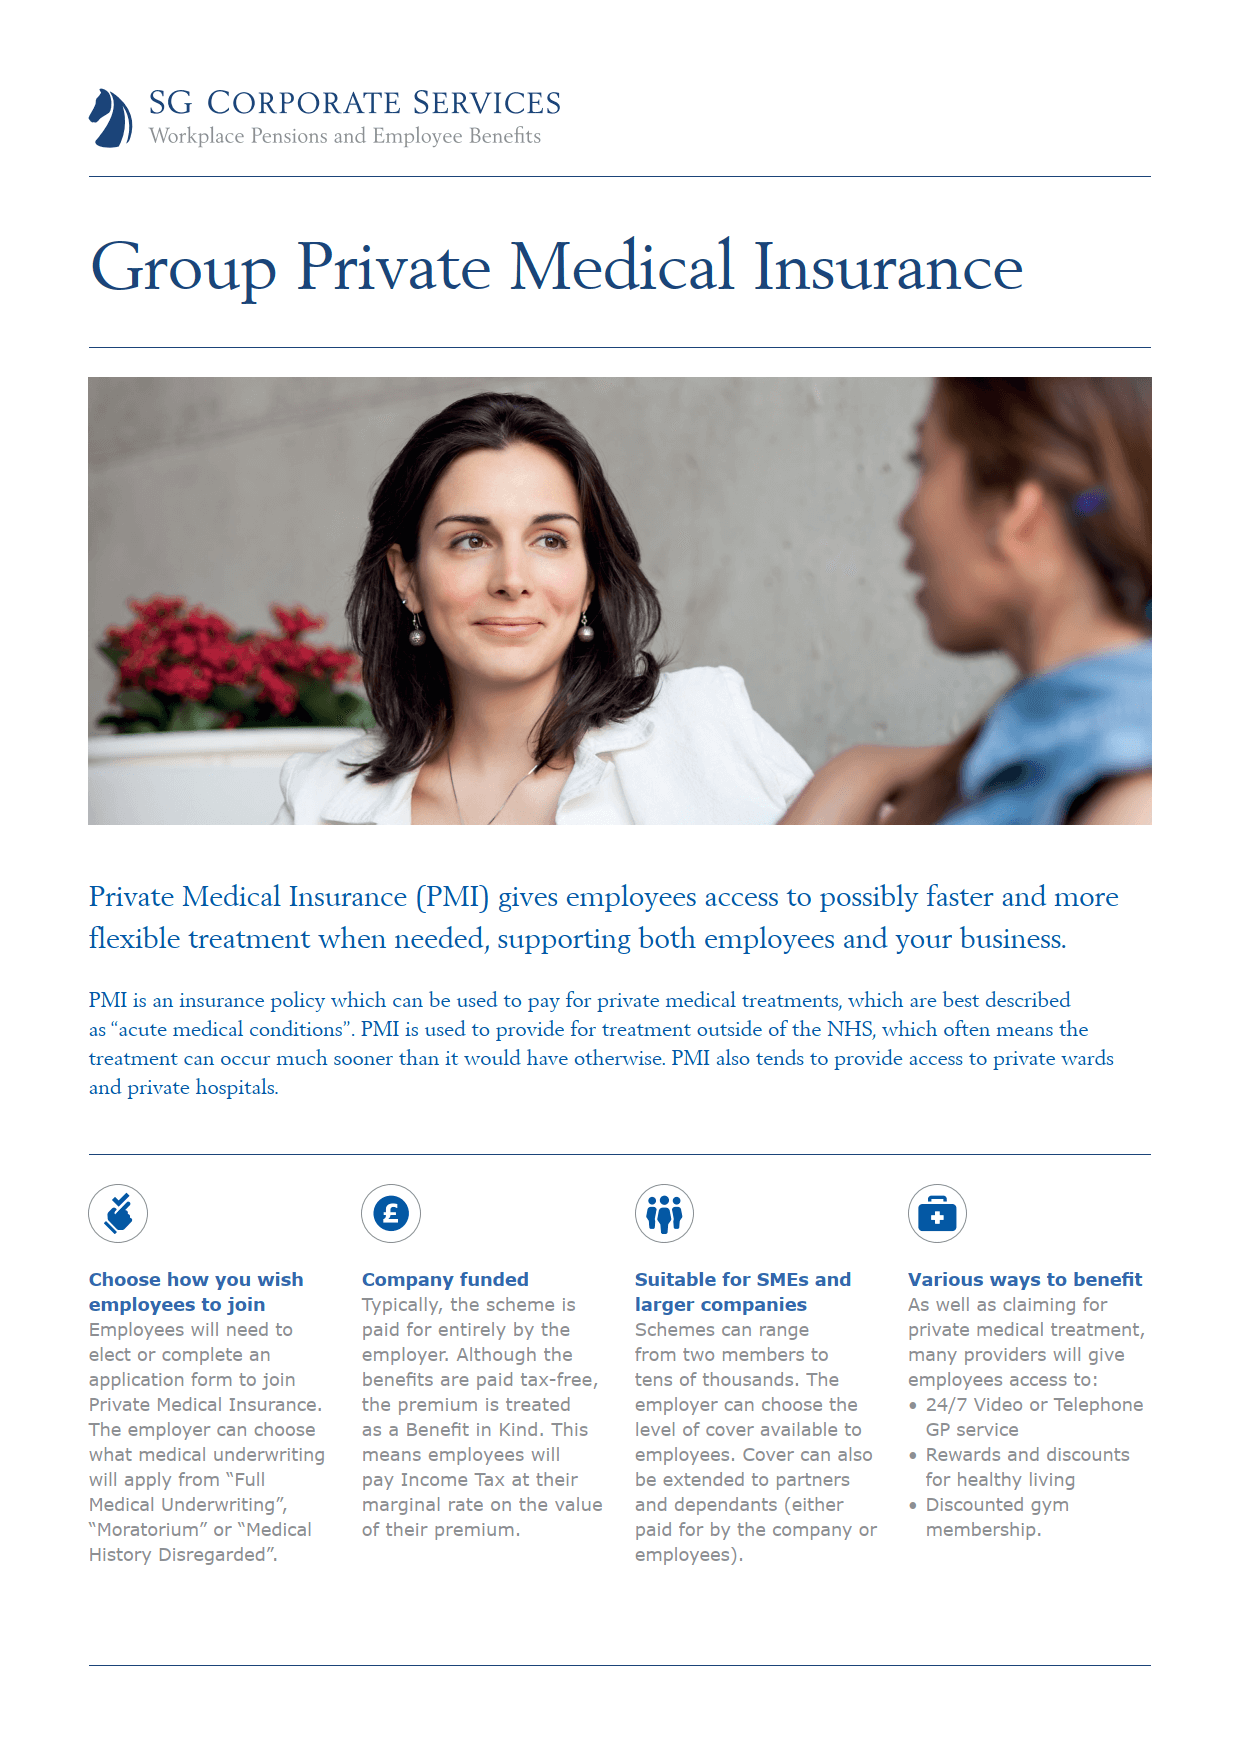 Product Guide - Group Private Medical Insurance